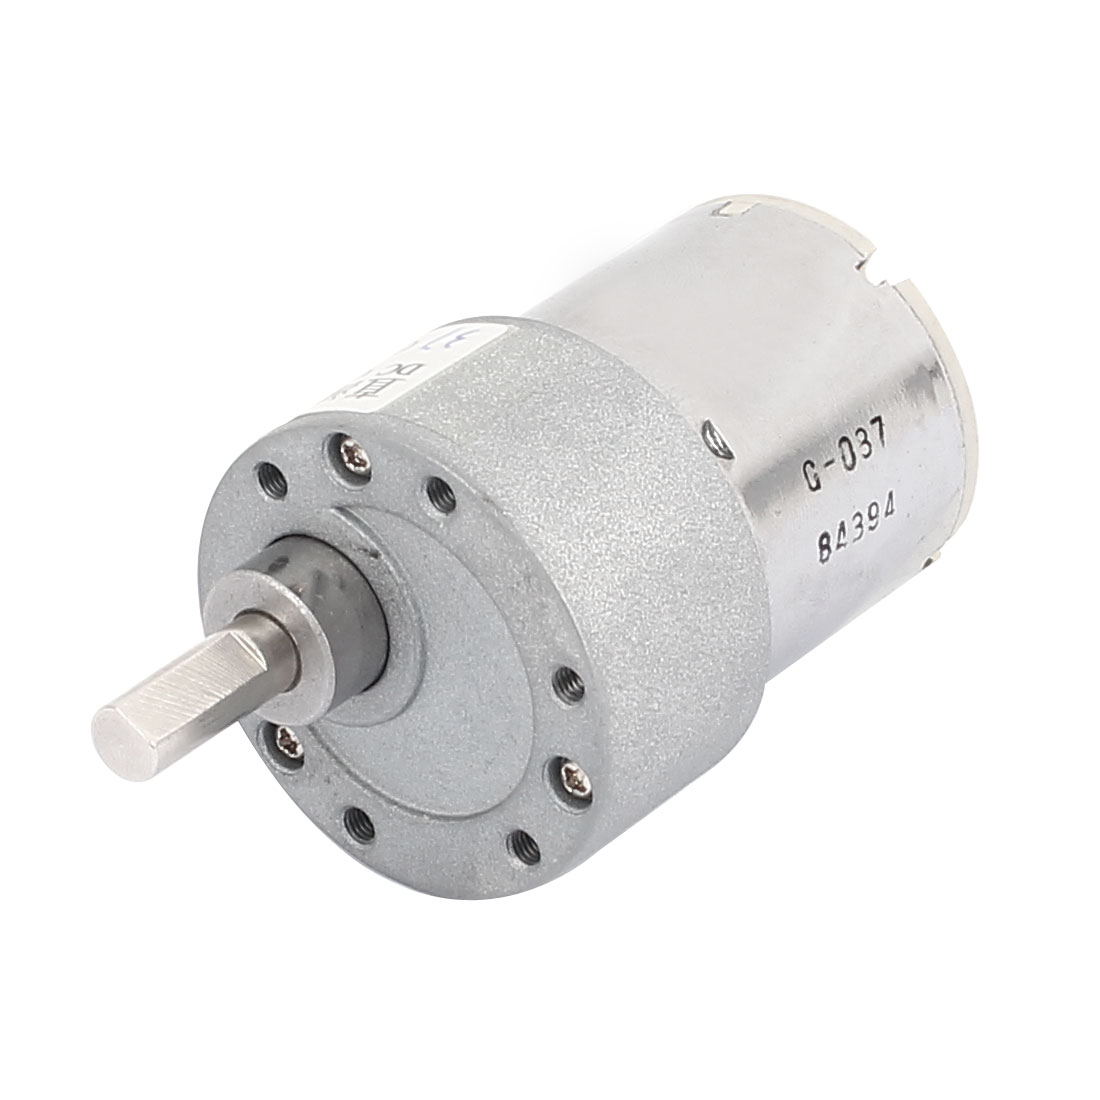 12V 37GB 500RPM Gear Box Robot Micro DC Geared Motor